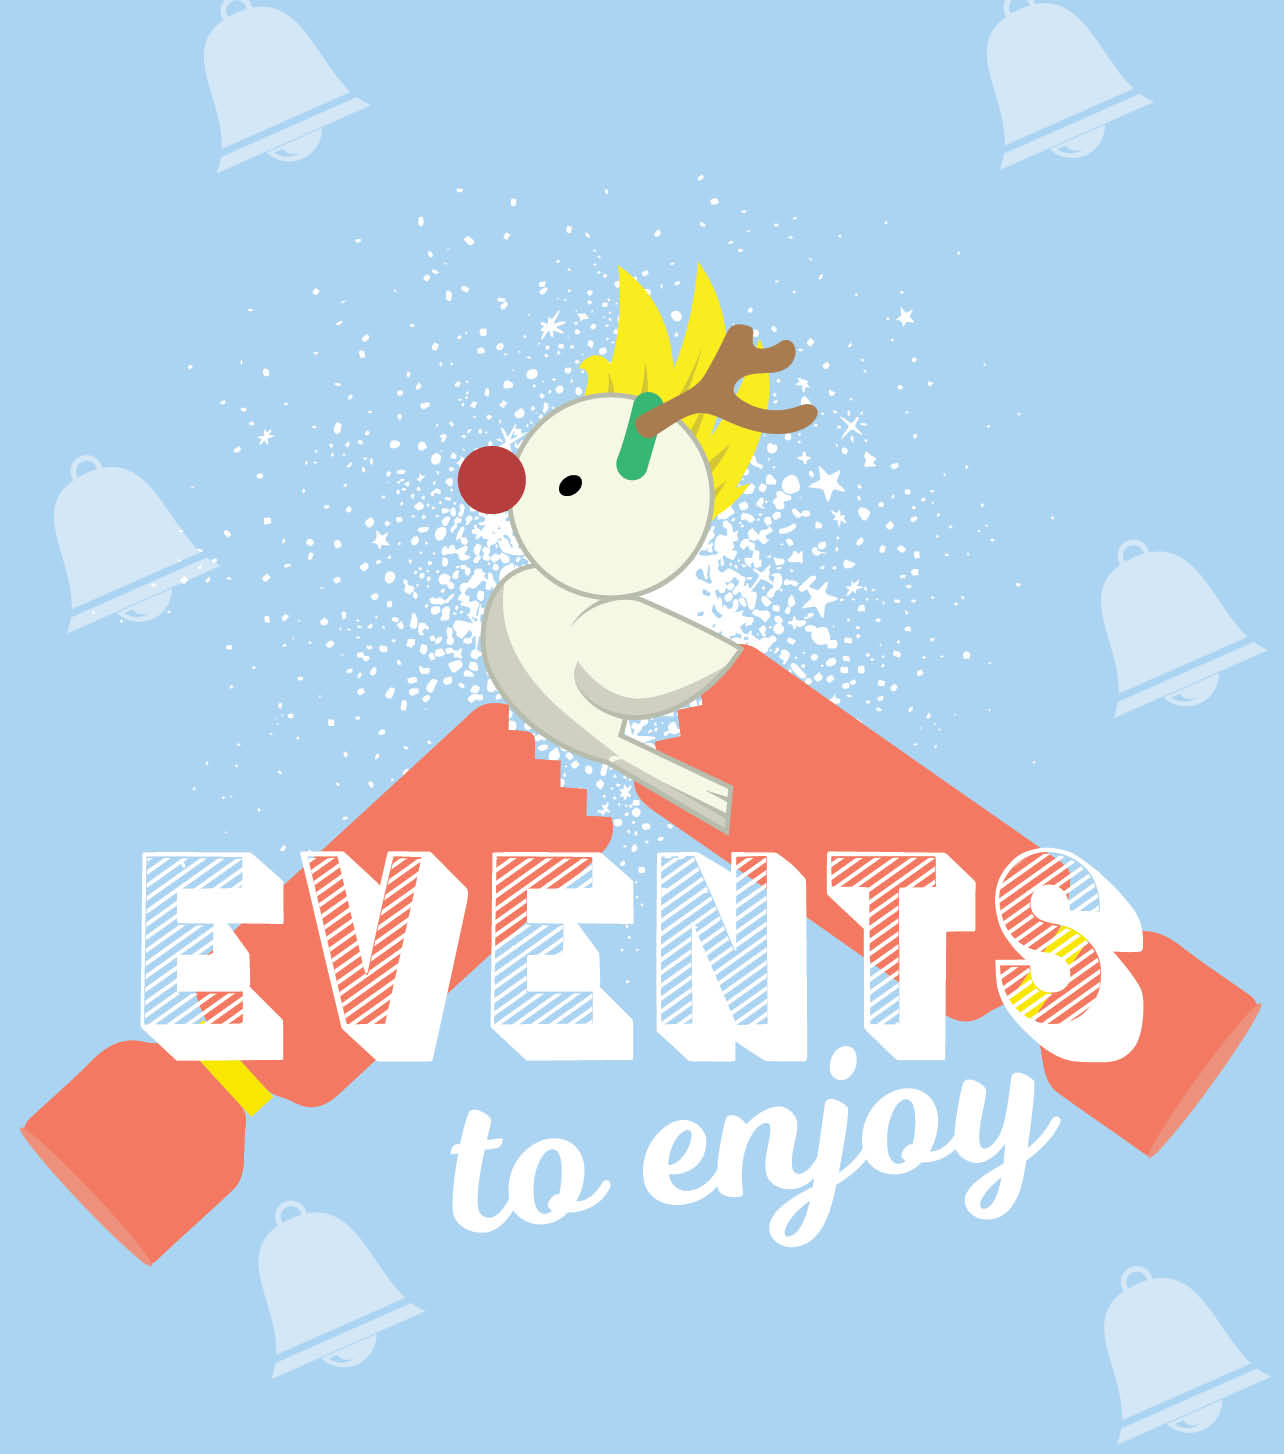 CH4806_Xmas 2019_Web Tiles_Events to enjoy_624x727px